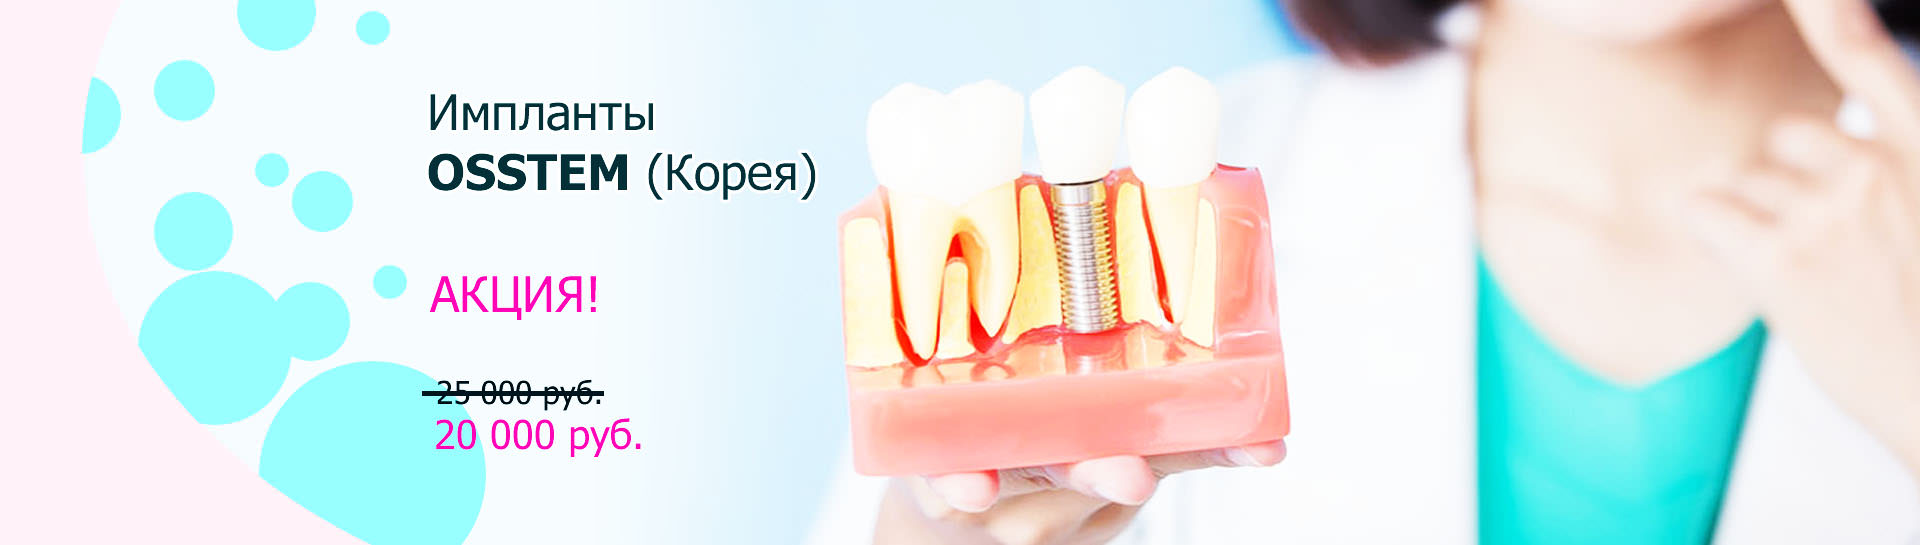 https://denta-maryino.ru/wp-content/uploads/banner_Osstem_implant-1.jpg 1x, https://denta-maryino.ru/wp-content/cache/thumb/f2/29960f17a90c1f2_1320x545.jpg 1320w